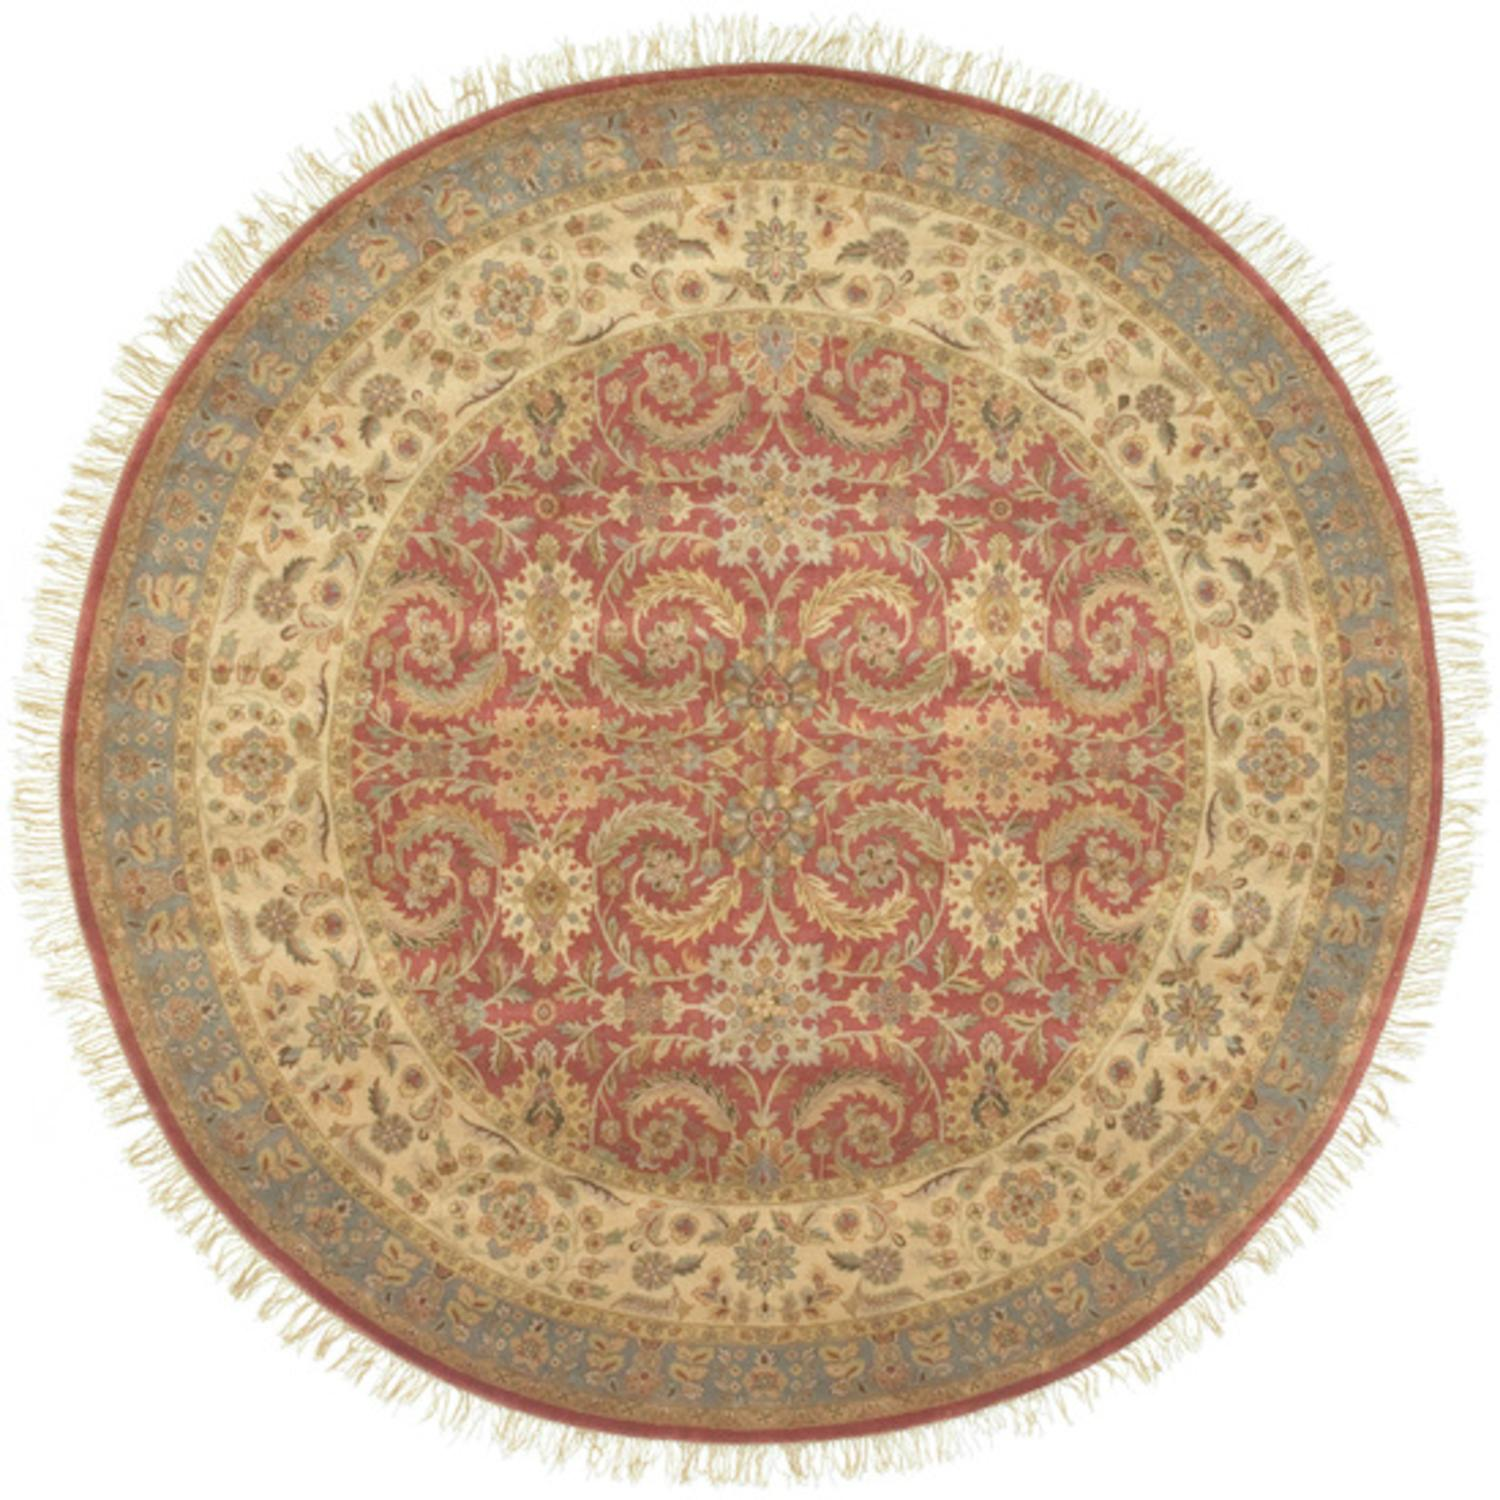 8' Chesterfield Khaki Green & Mossy Stone Wool Round Area Throw Rug